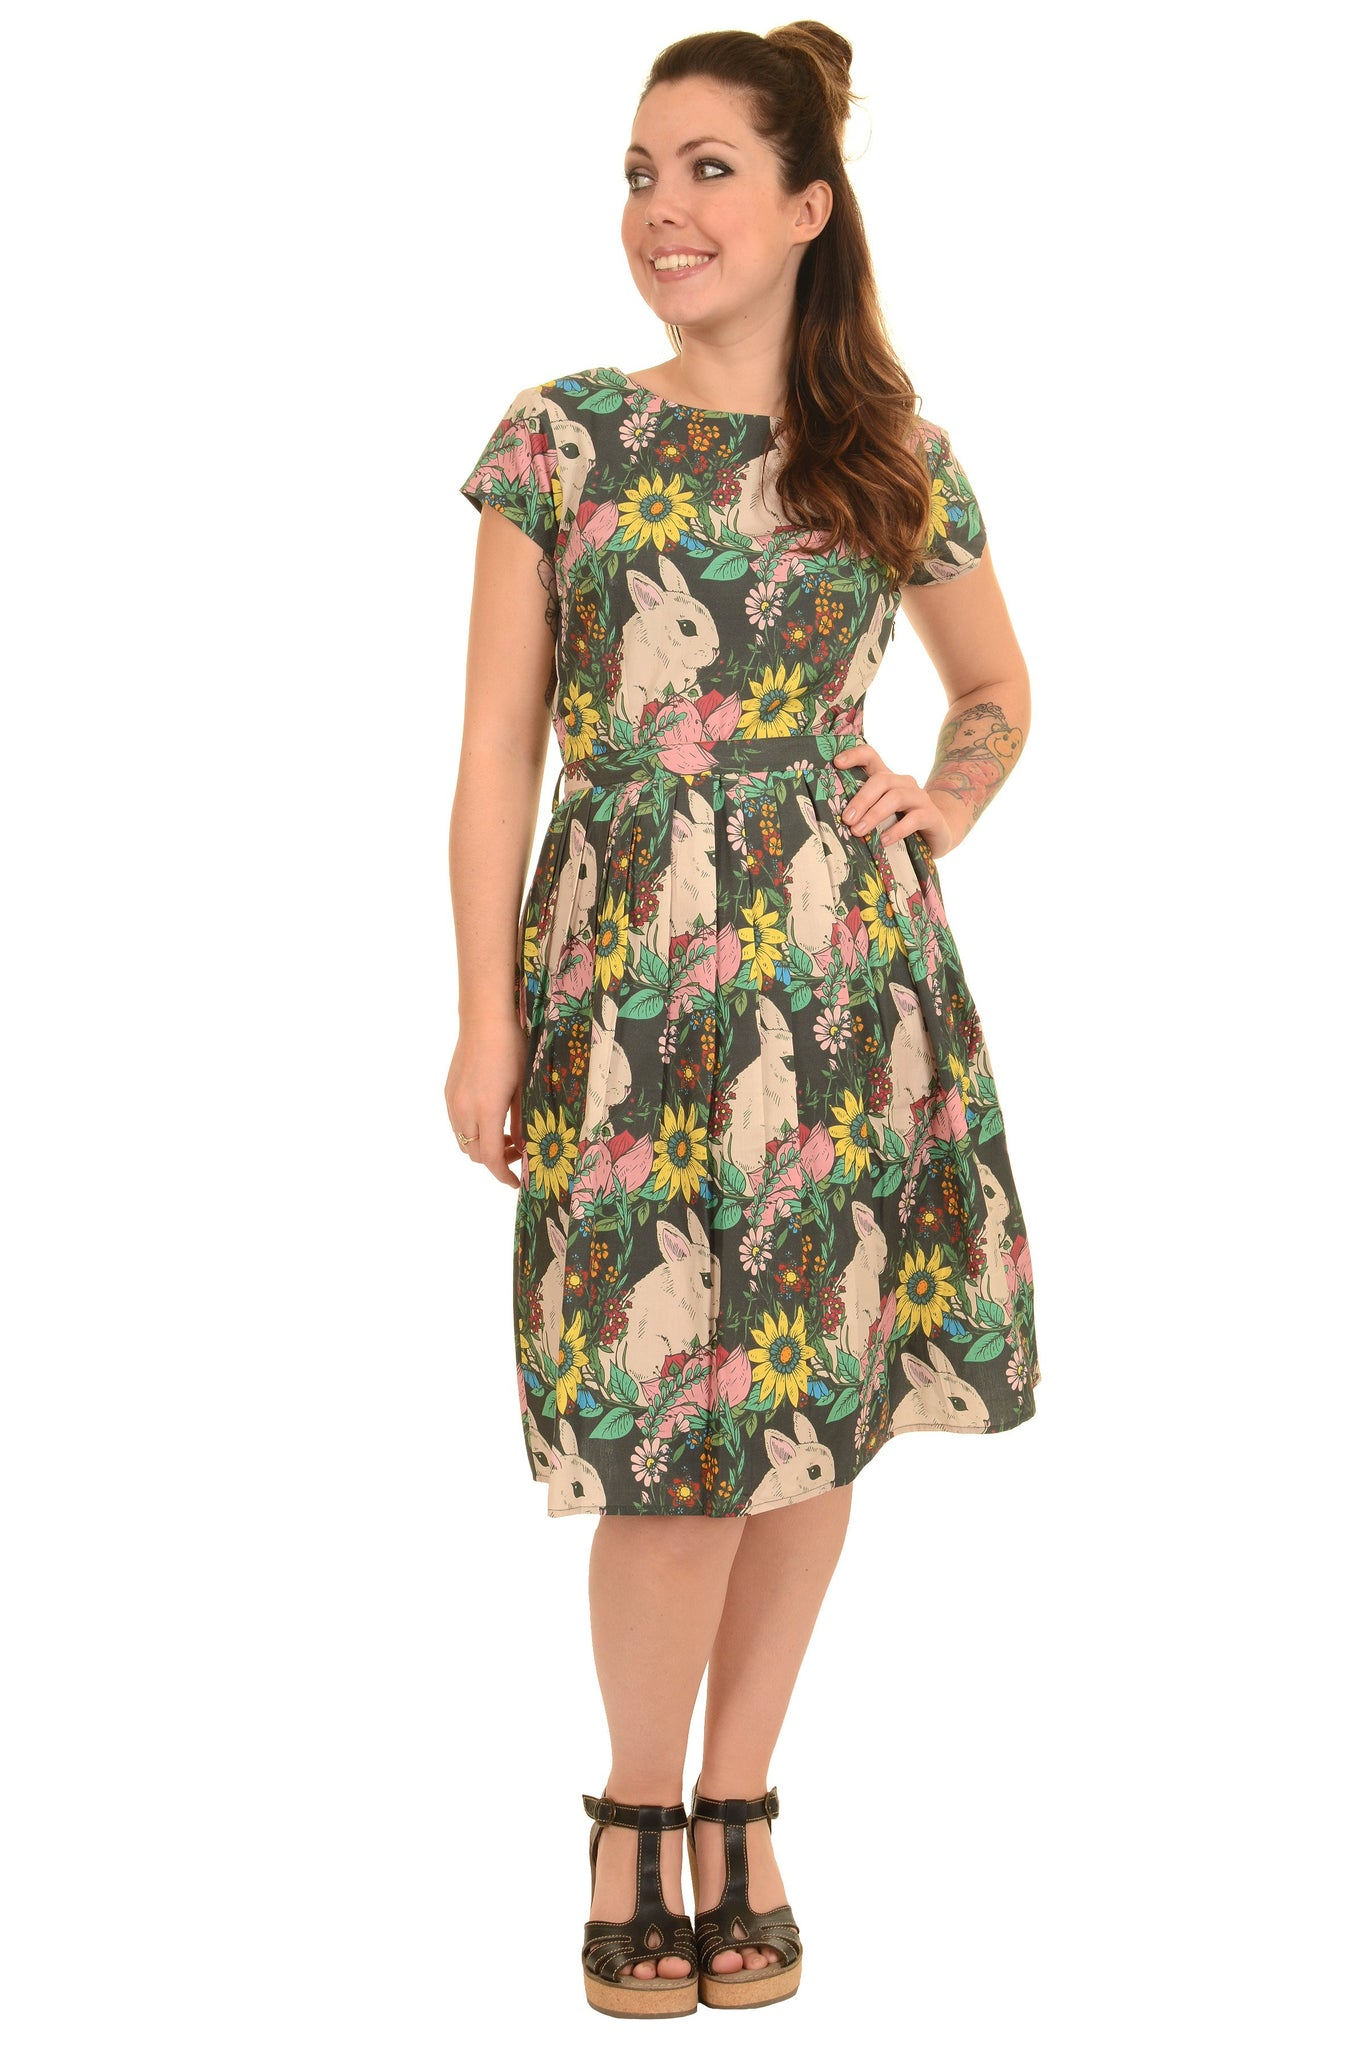 Floral Bunny Rabbit Dress